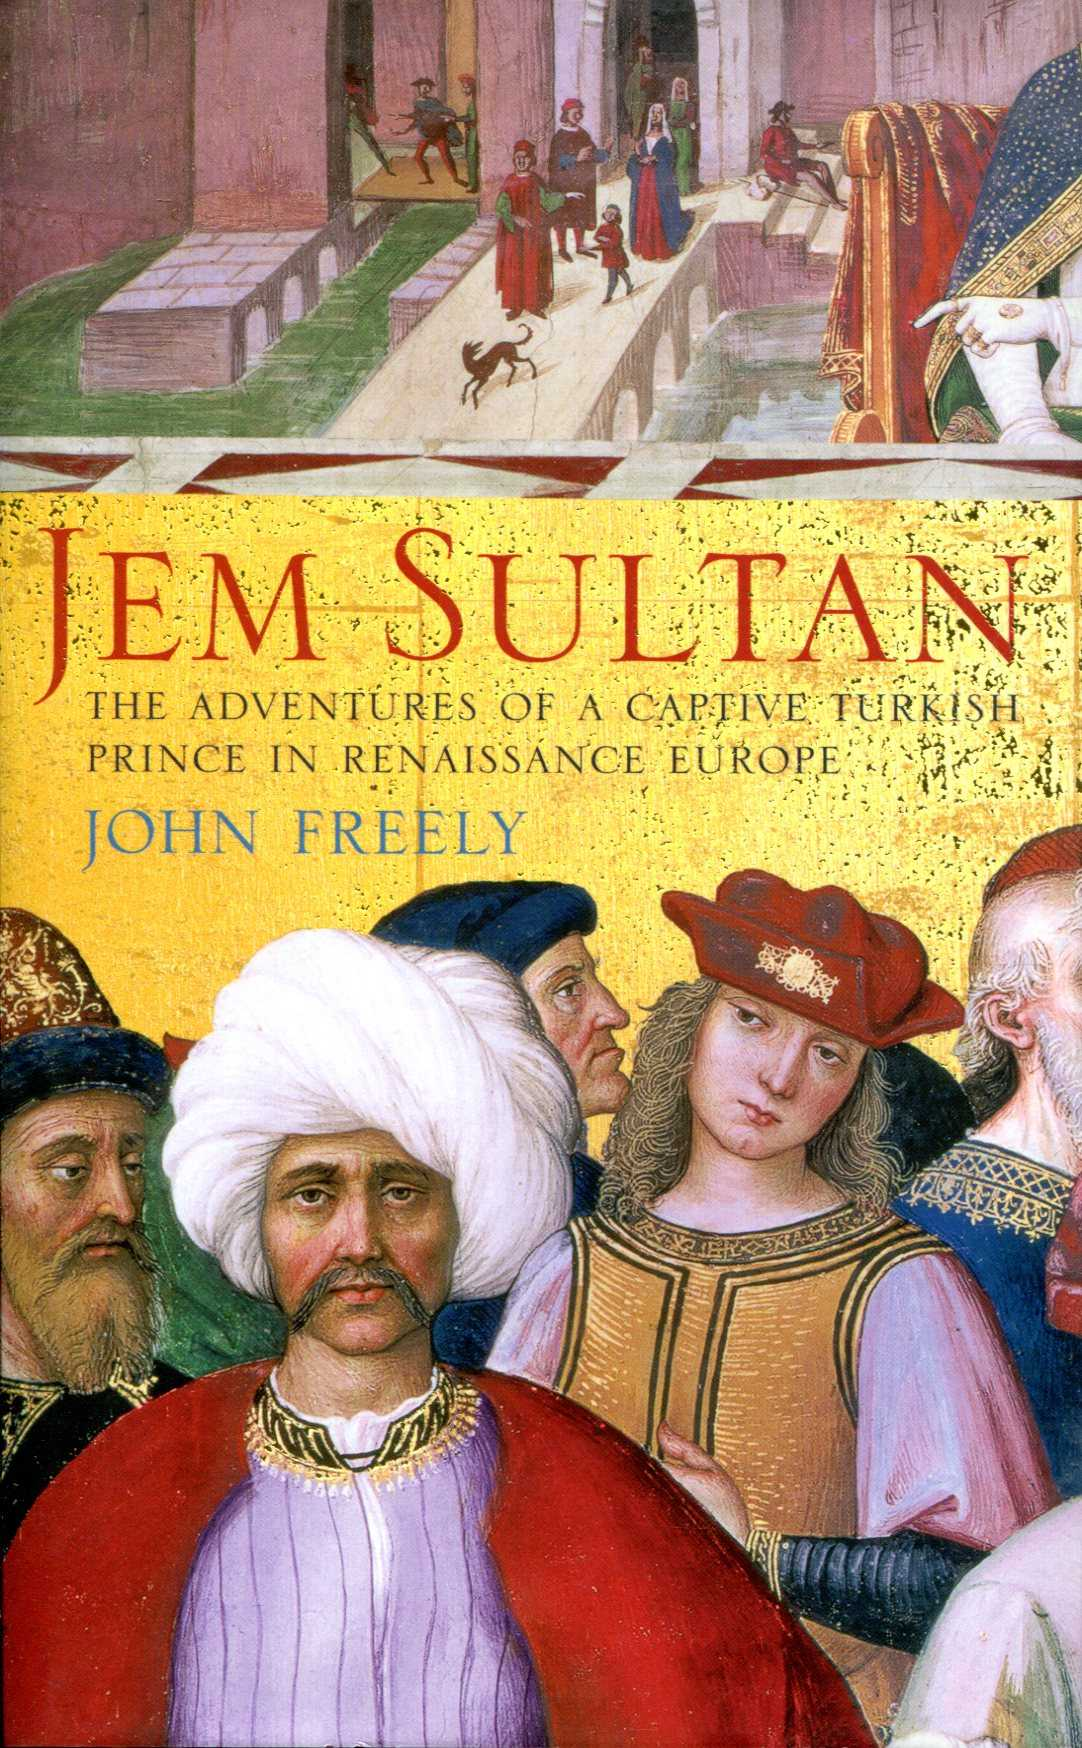 Image for Jem Sultan: The Adventures of a Captive Turkish Prince in Renaissance Europe by John Freely (2004-07-19)